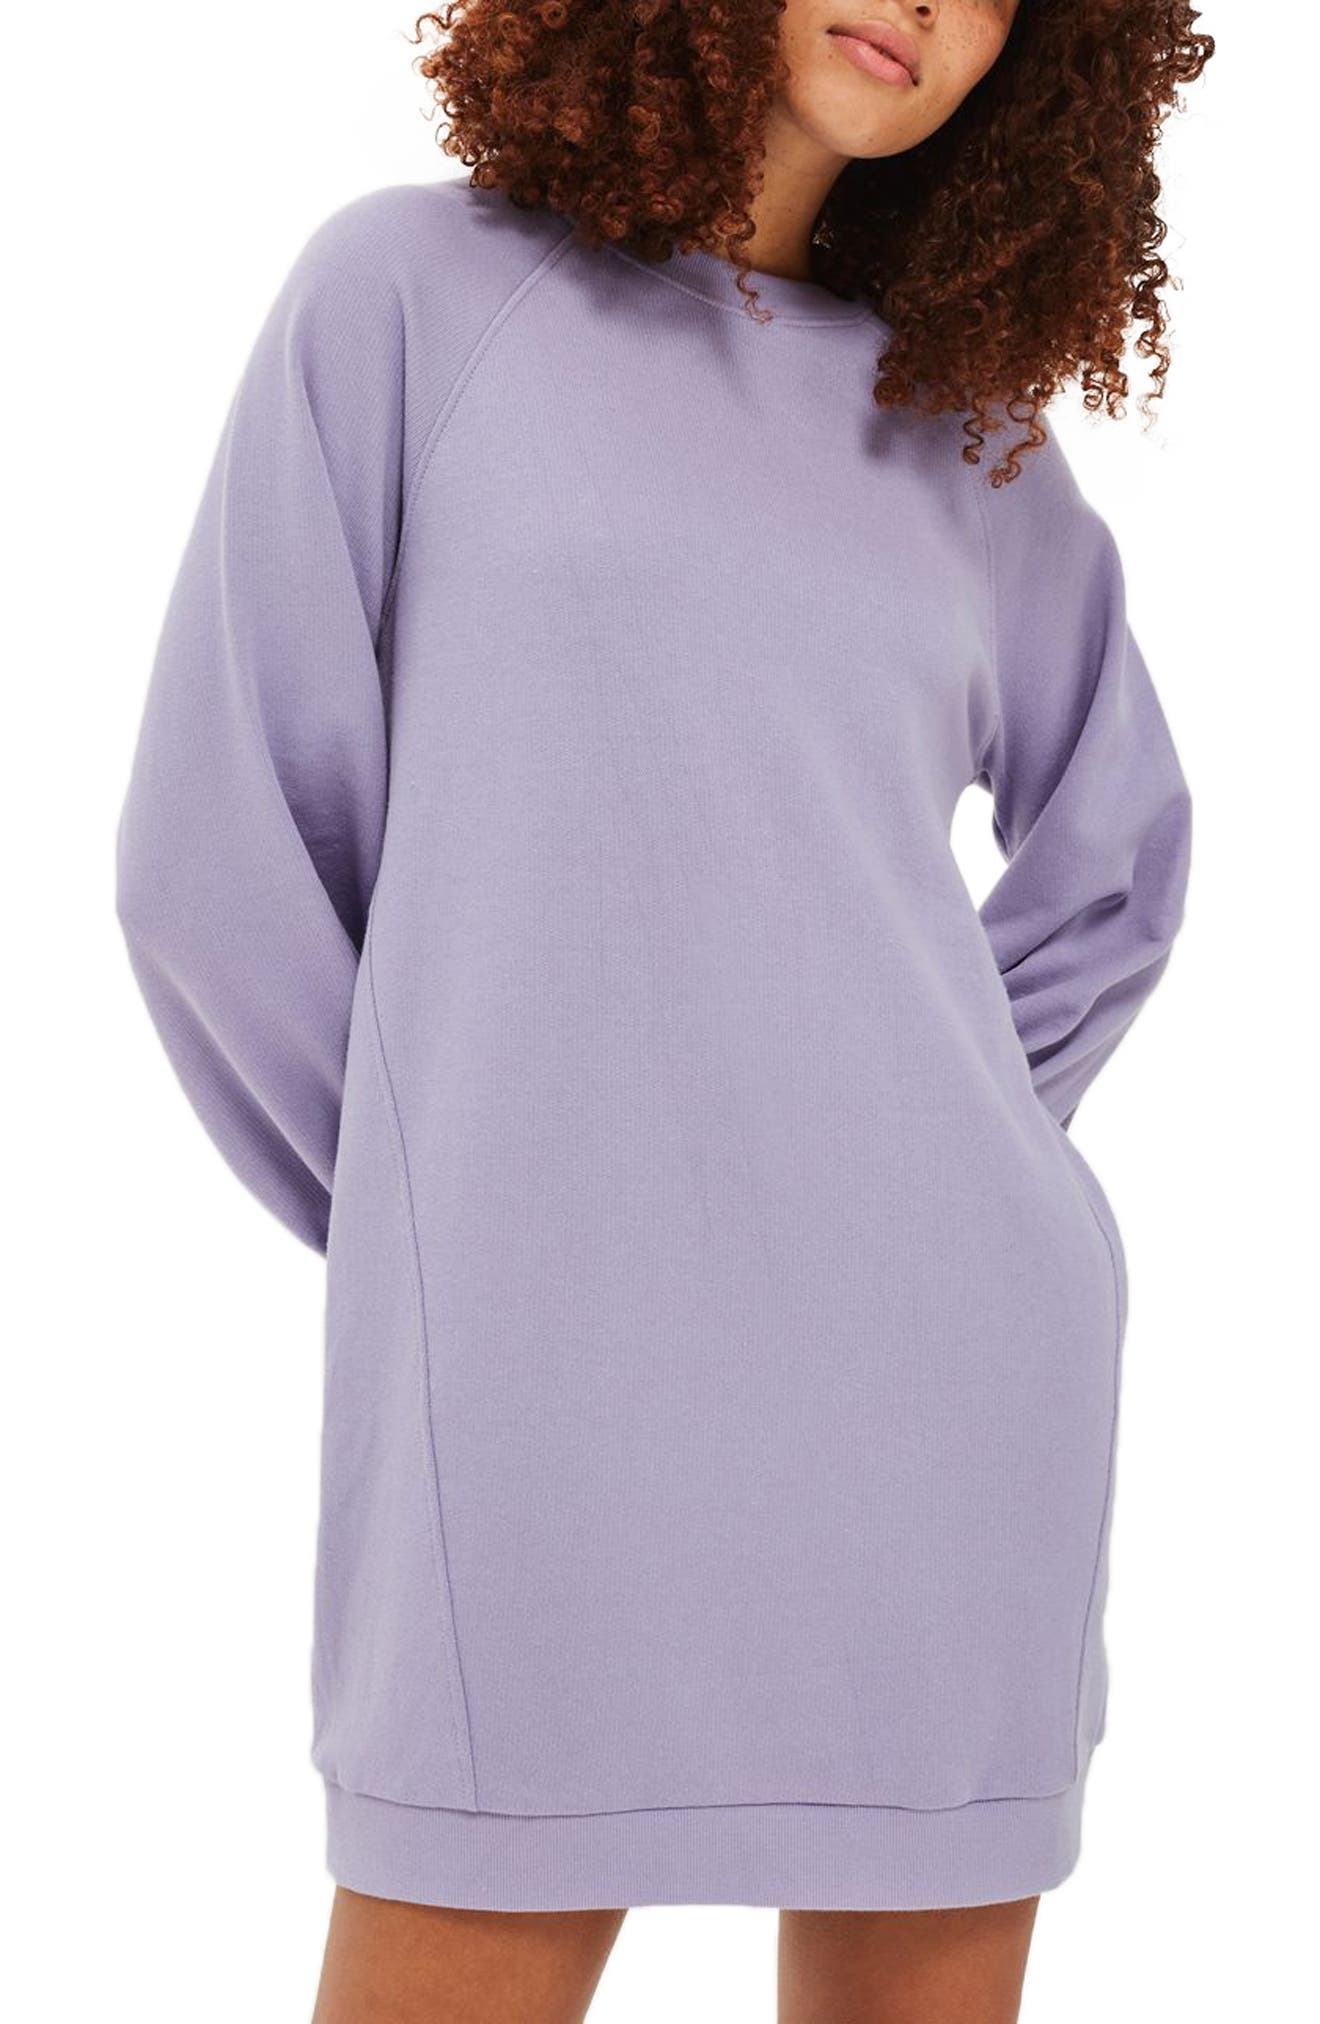 Topshop Balloon Sleeve Sweatshirt Dress